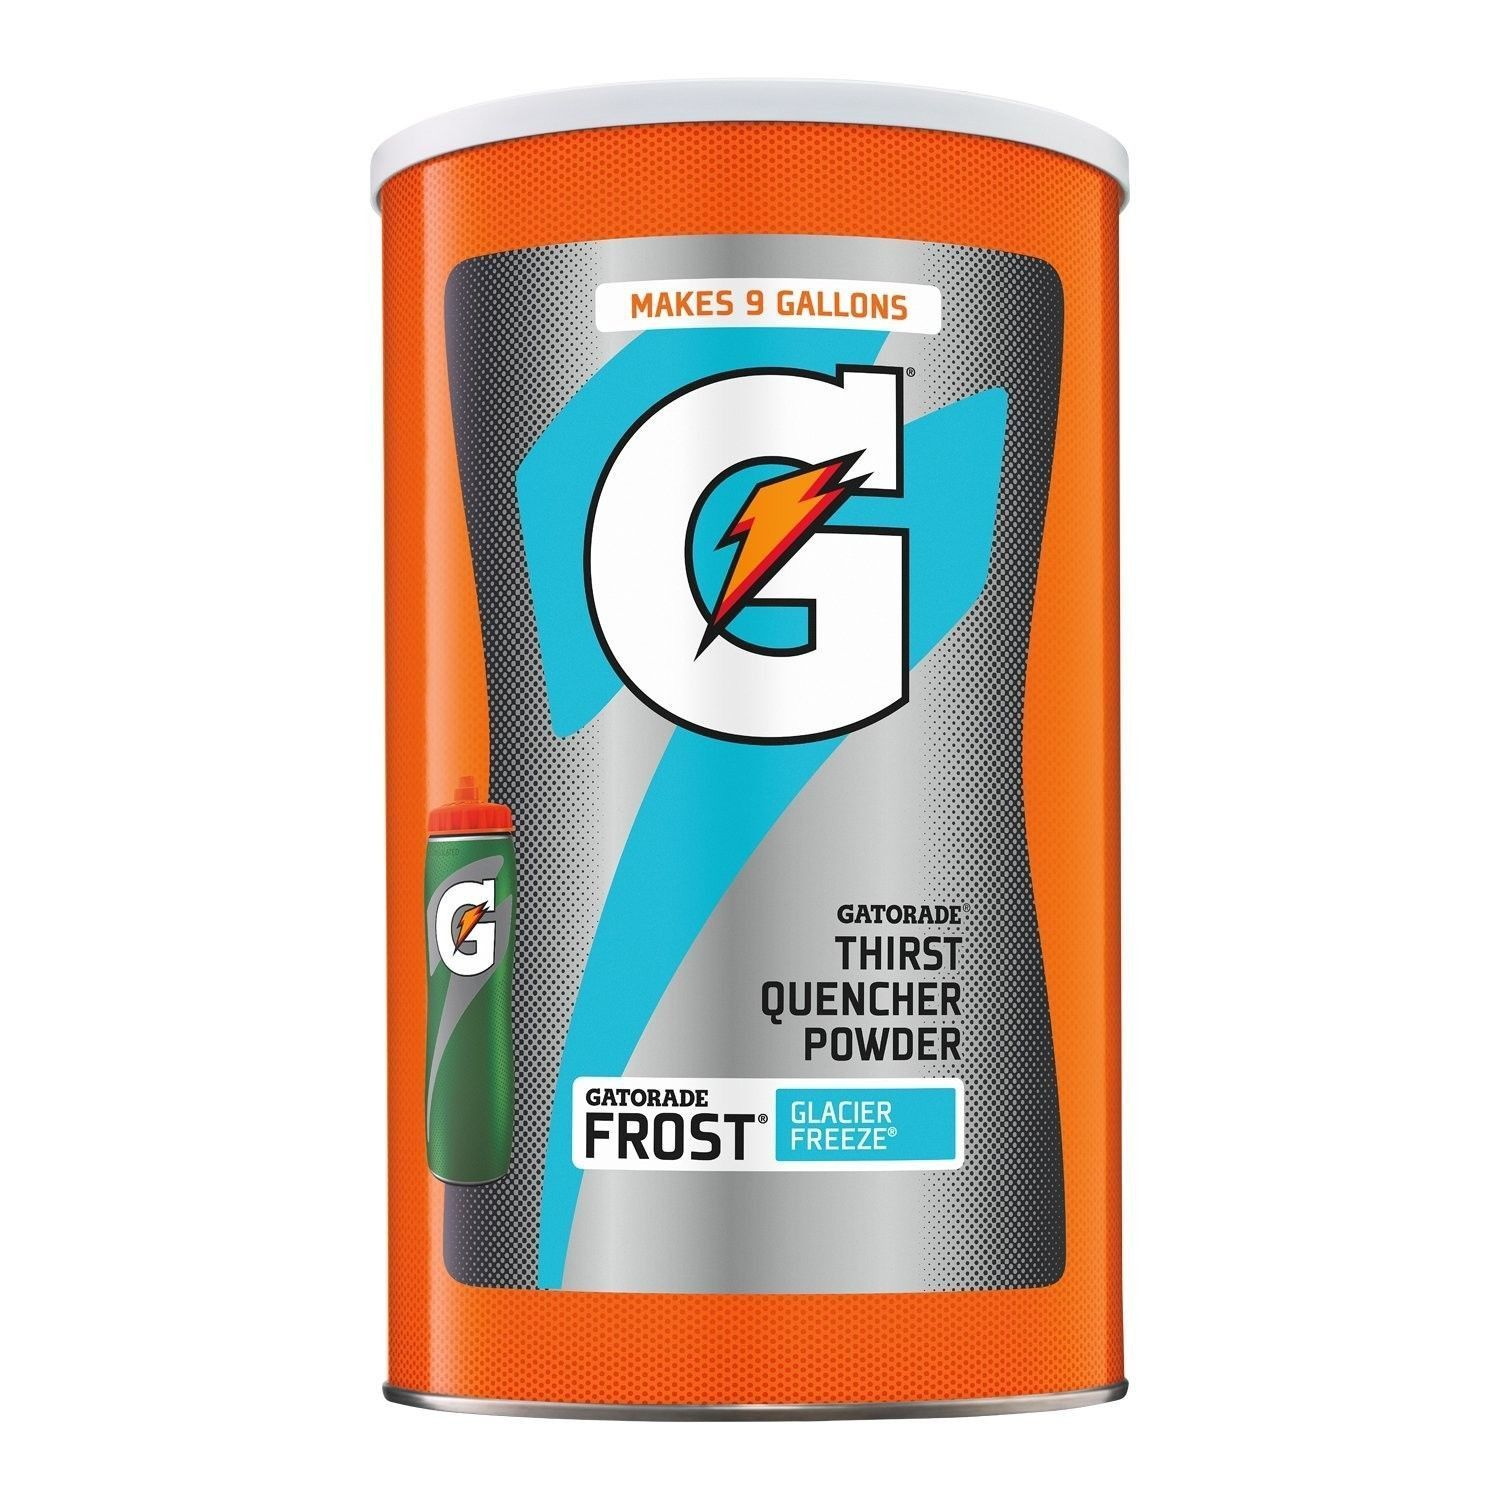 1cd008b89453c0 Gatorade Thirst Quencher Powder Frost Glacier Freeze 76.5 Ounce 76 Ounce